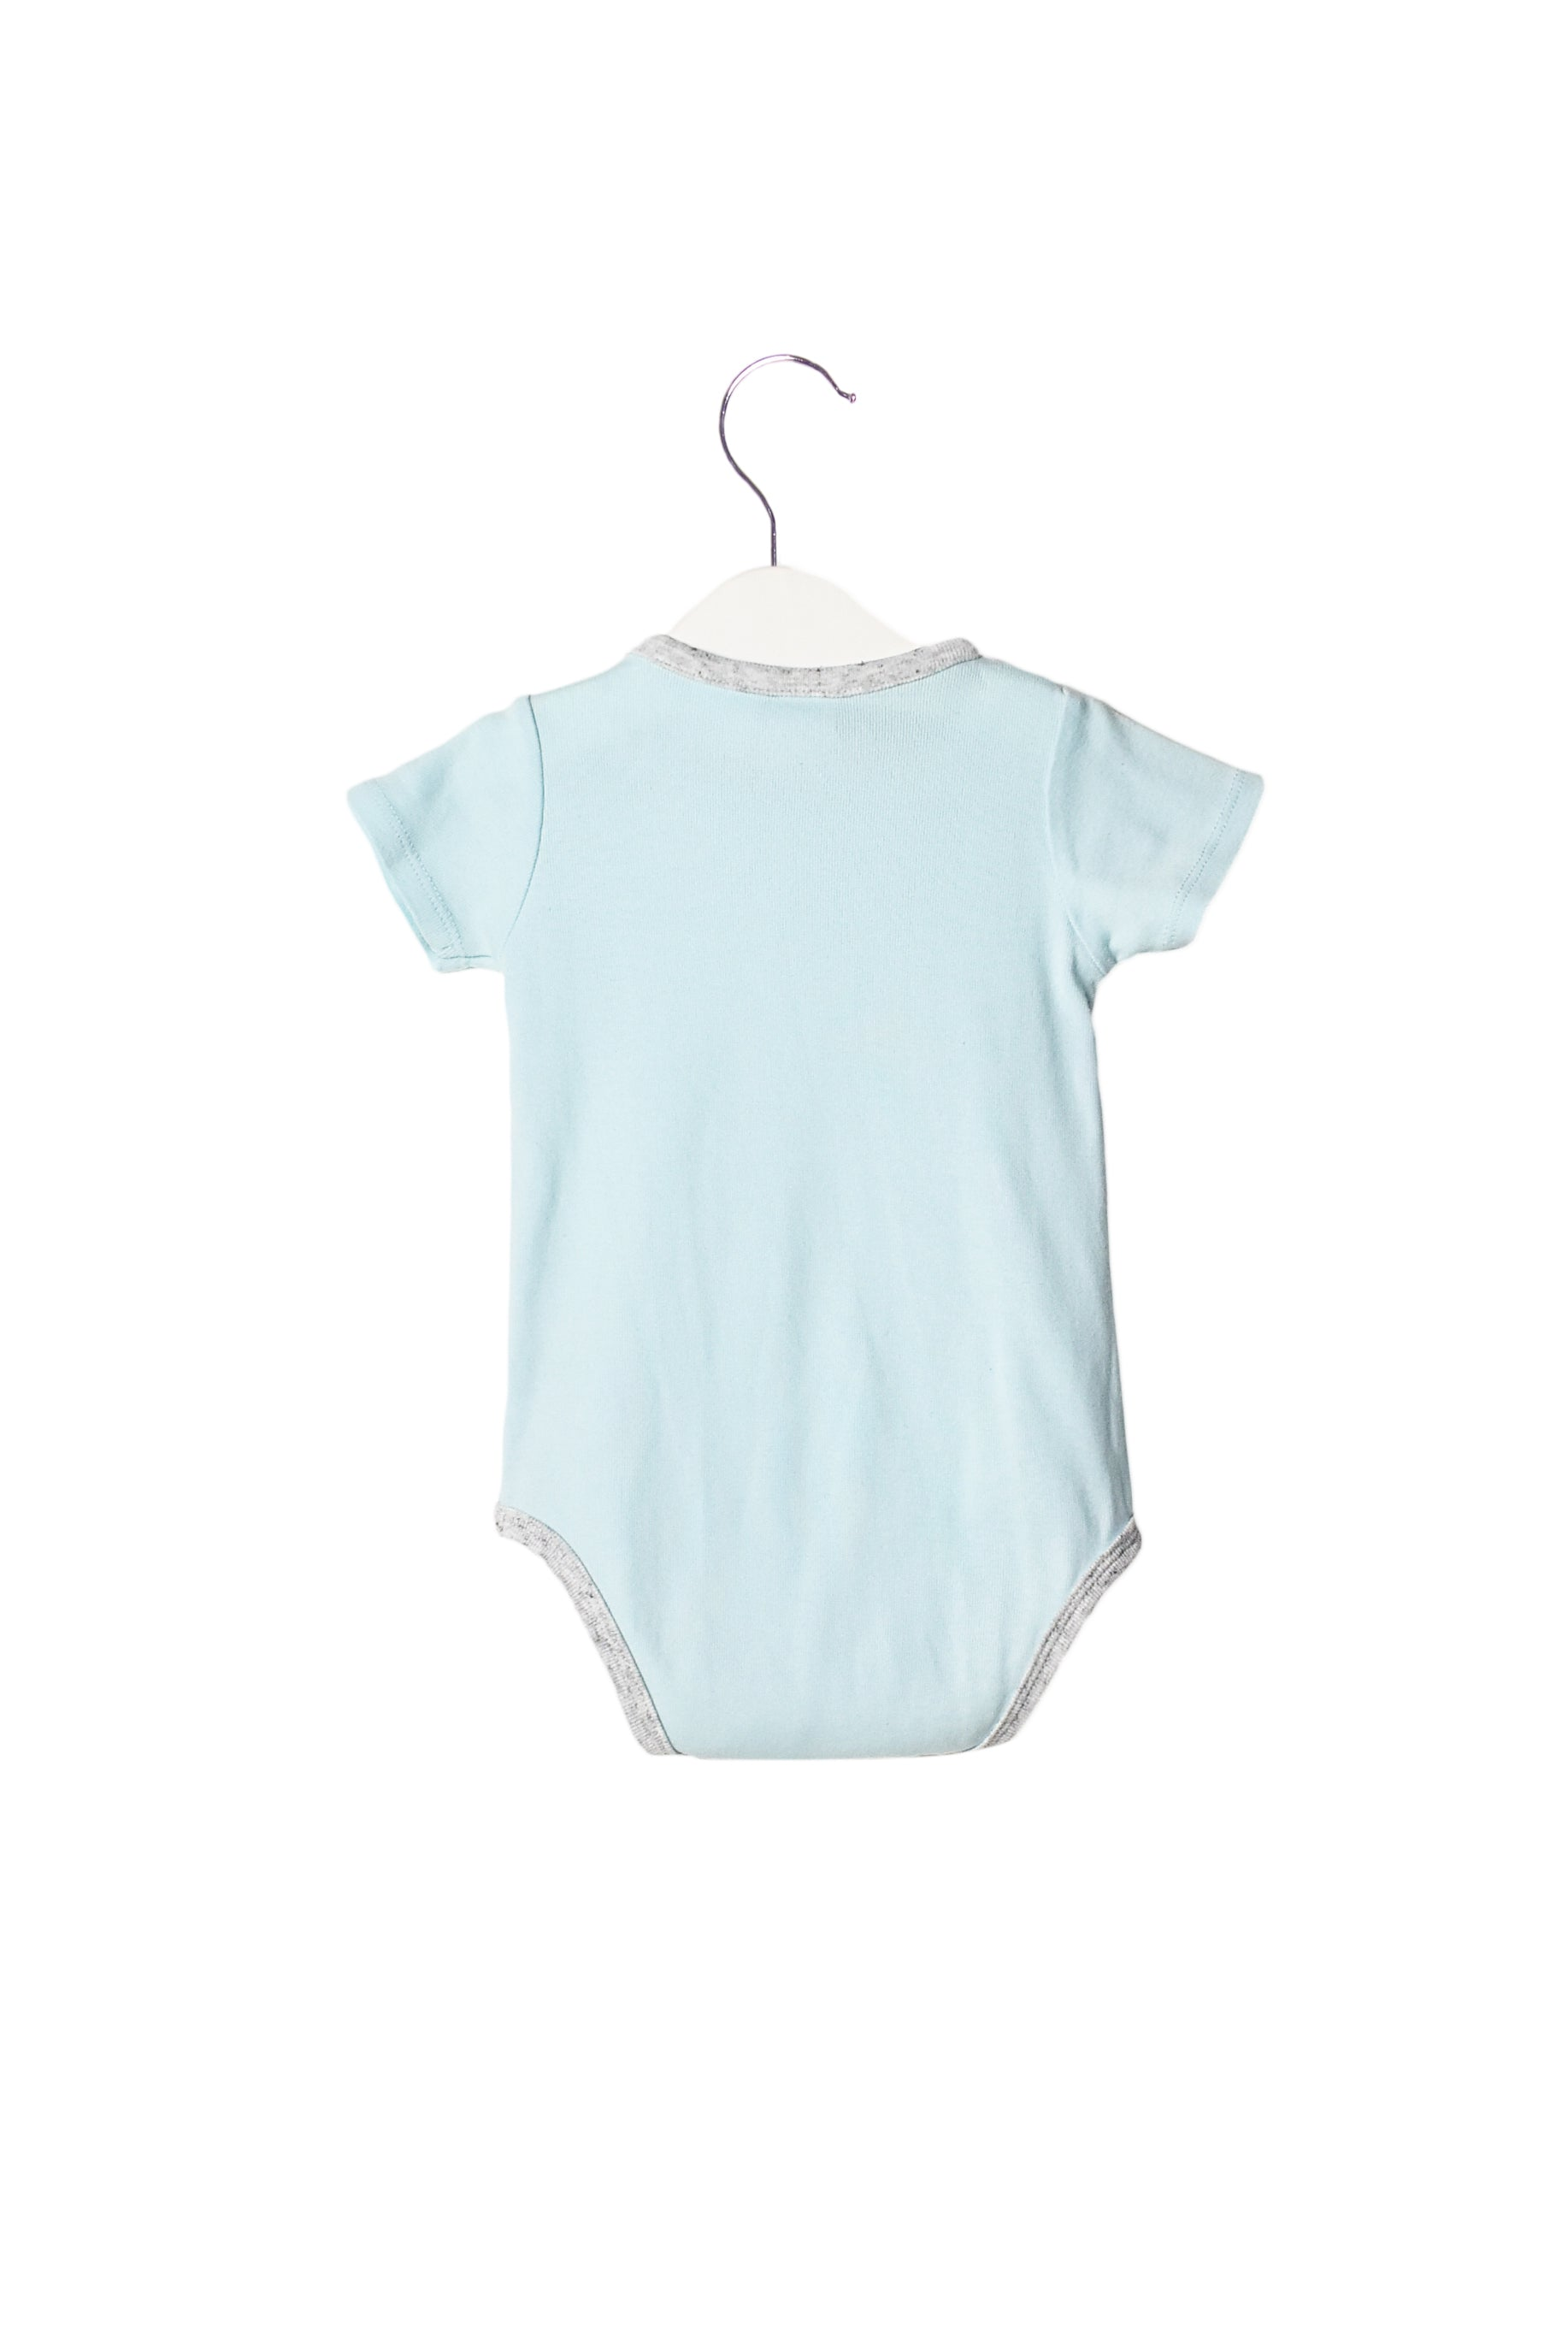 10007478 Seed Baby~ Bodysuit 3-6M at Retykle